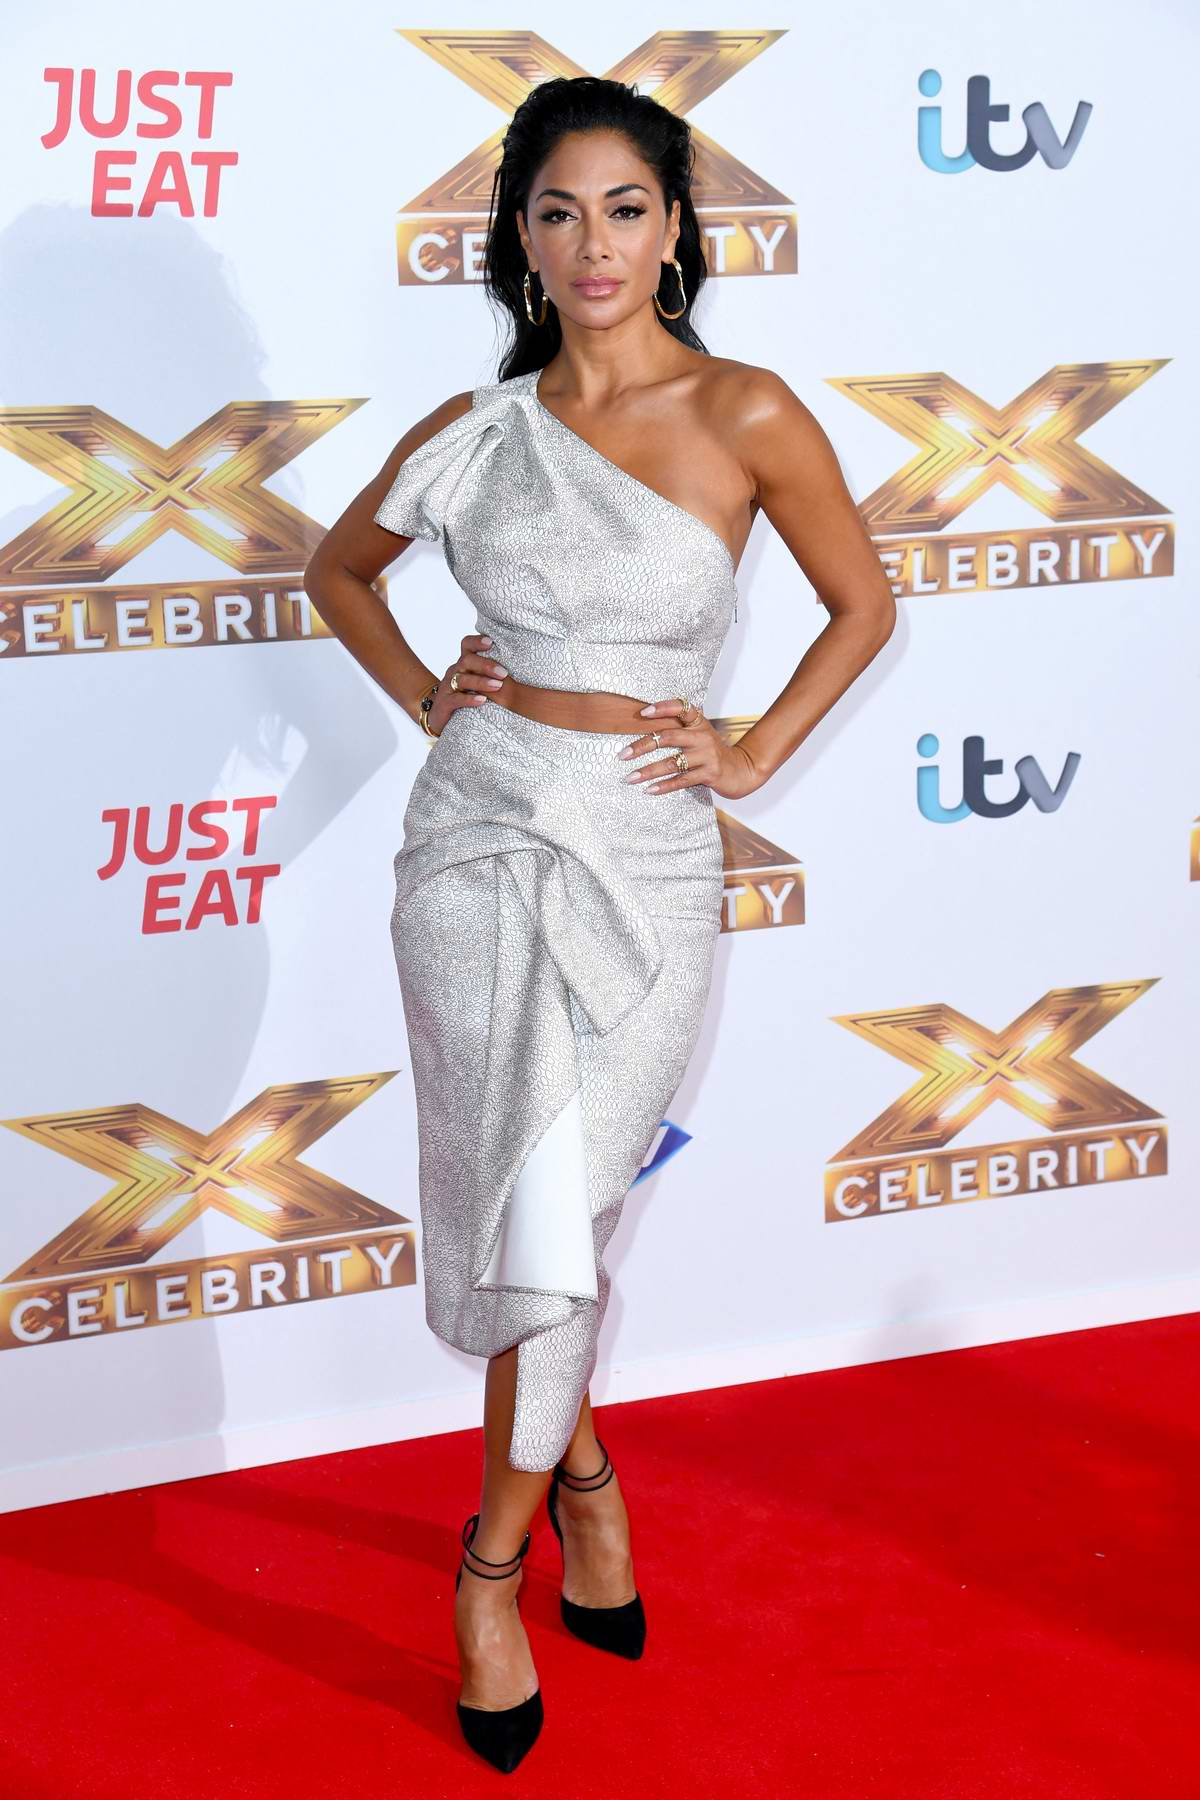 Nicole Scherzinger attends a photocall for X-Factor Celebrity in London, UK